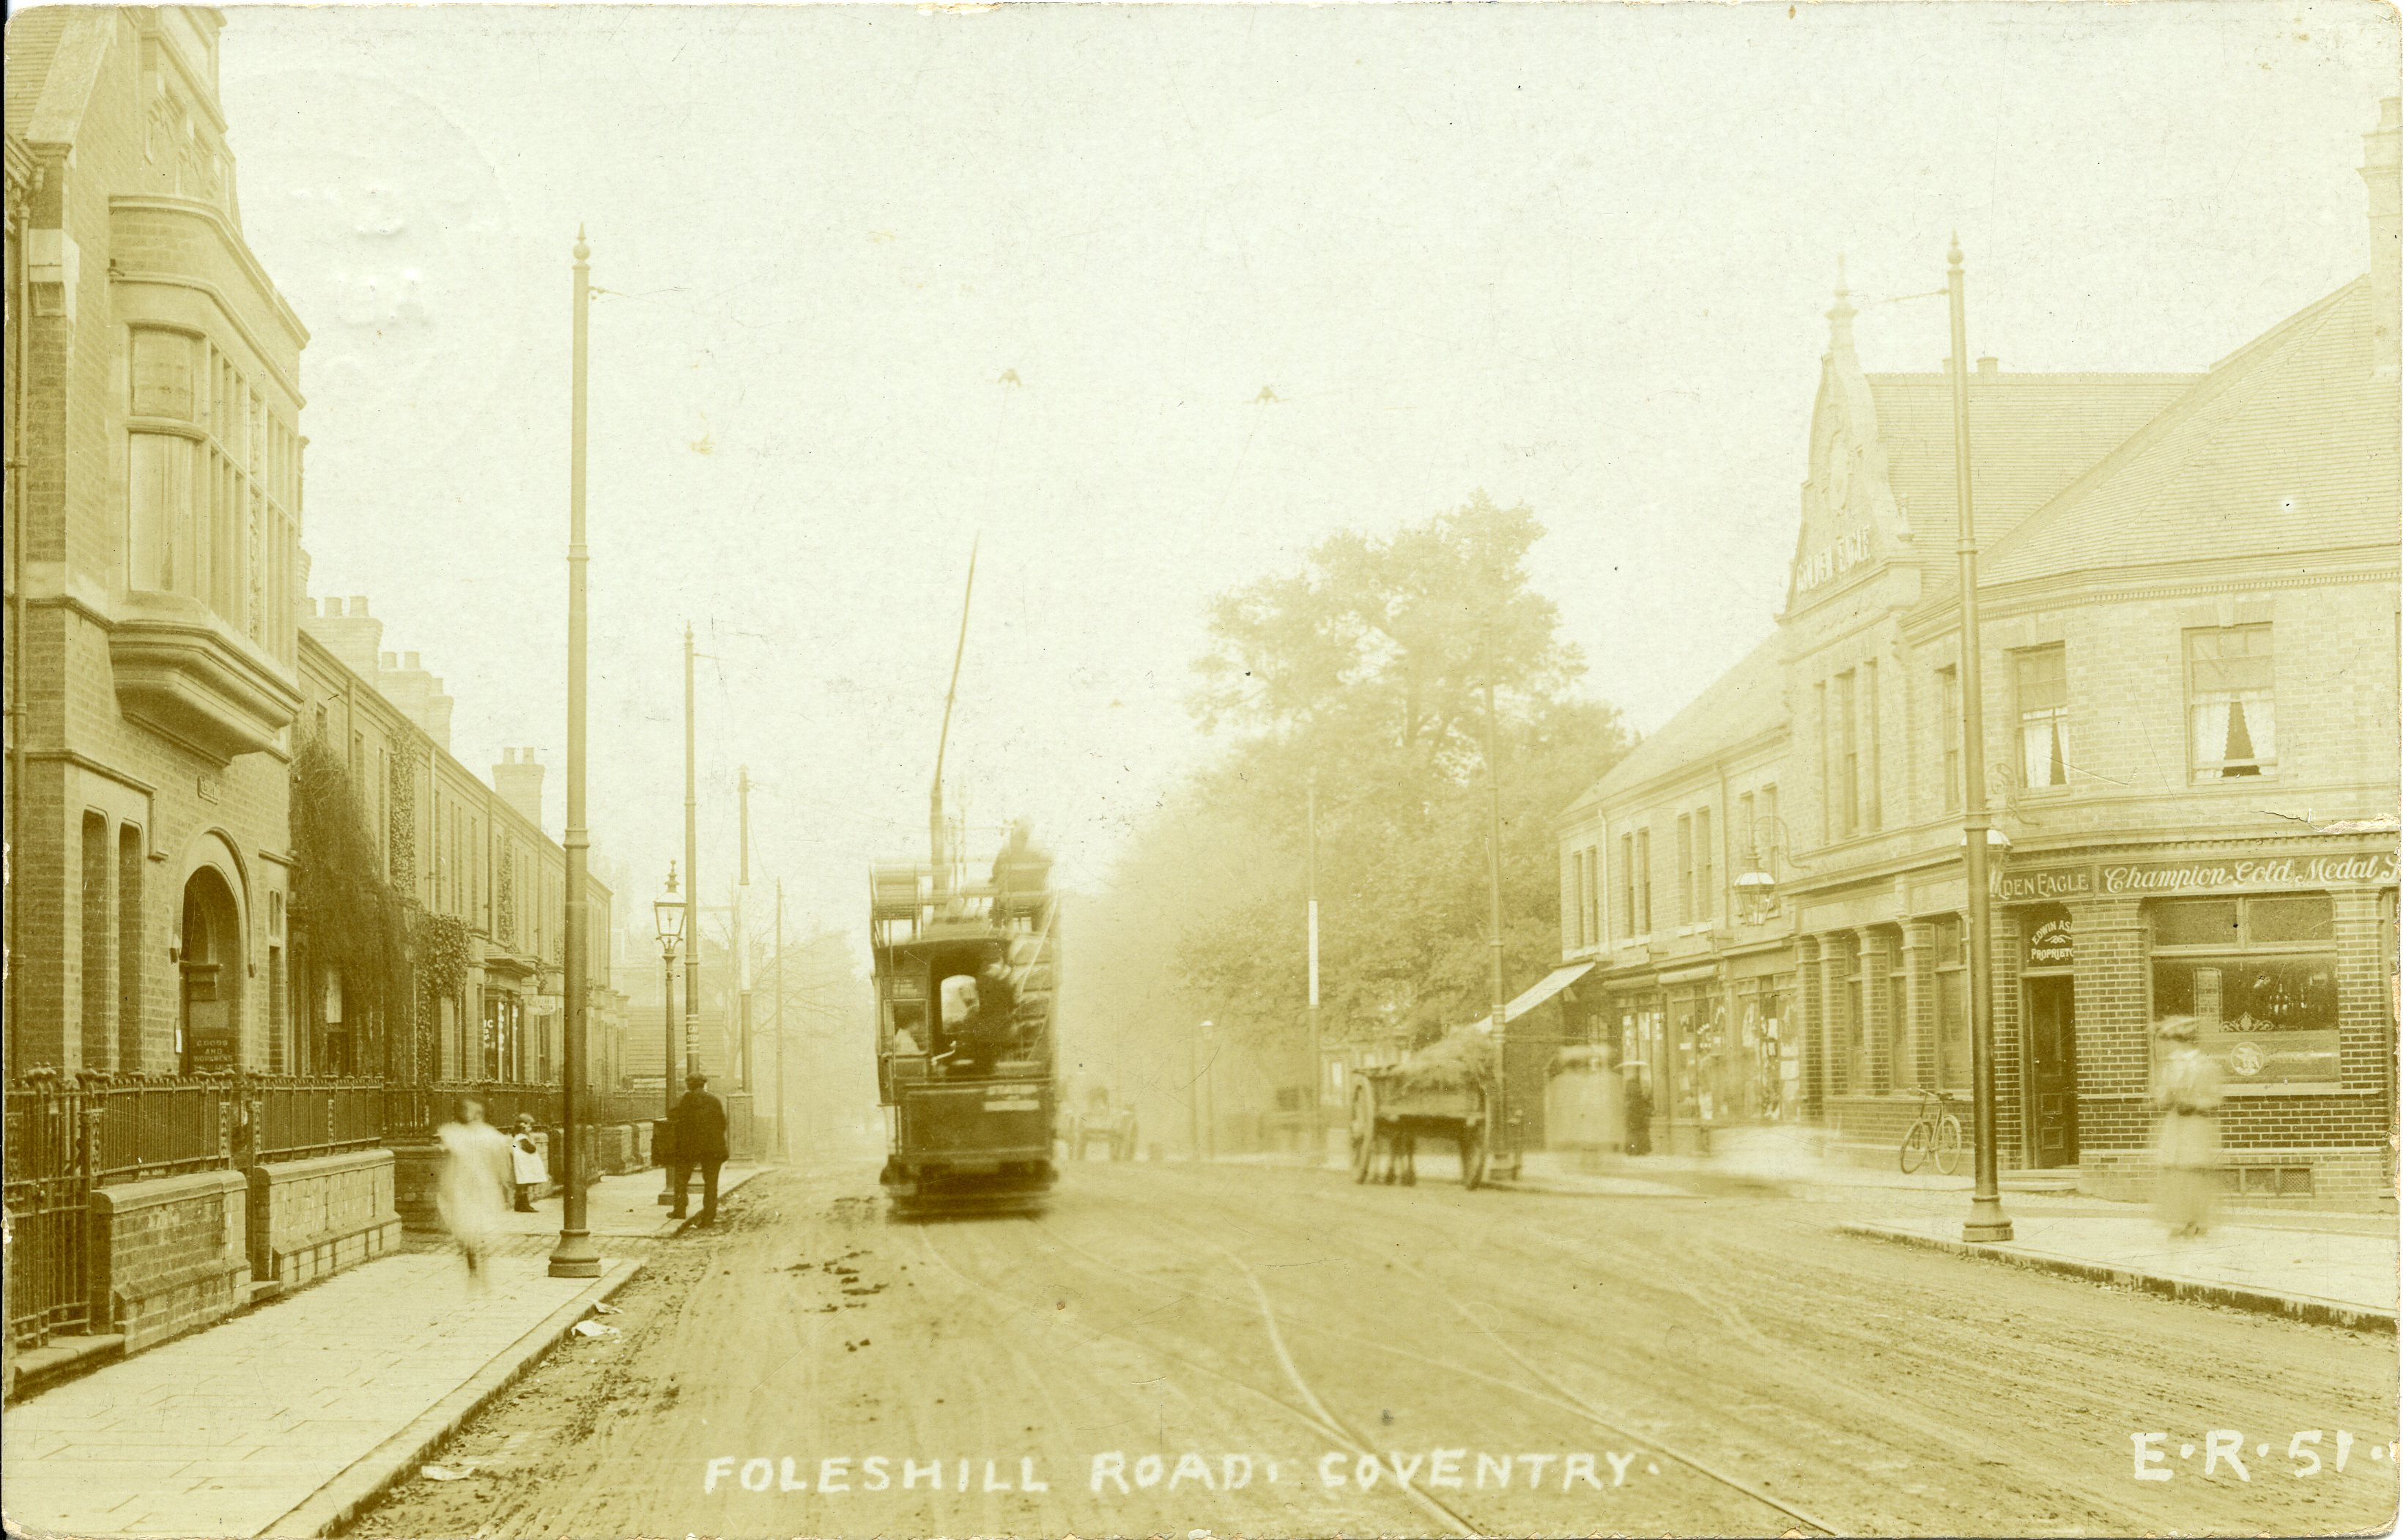 An old, sepia photo of the Foleshill Road with a tram